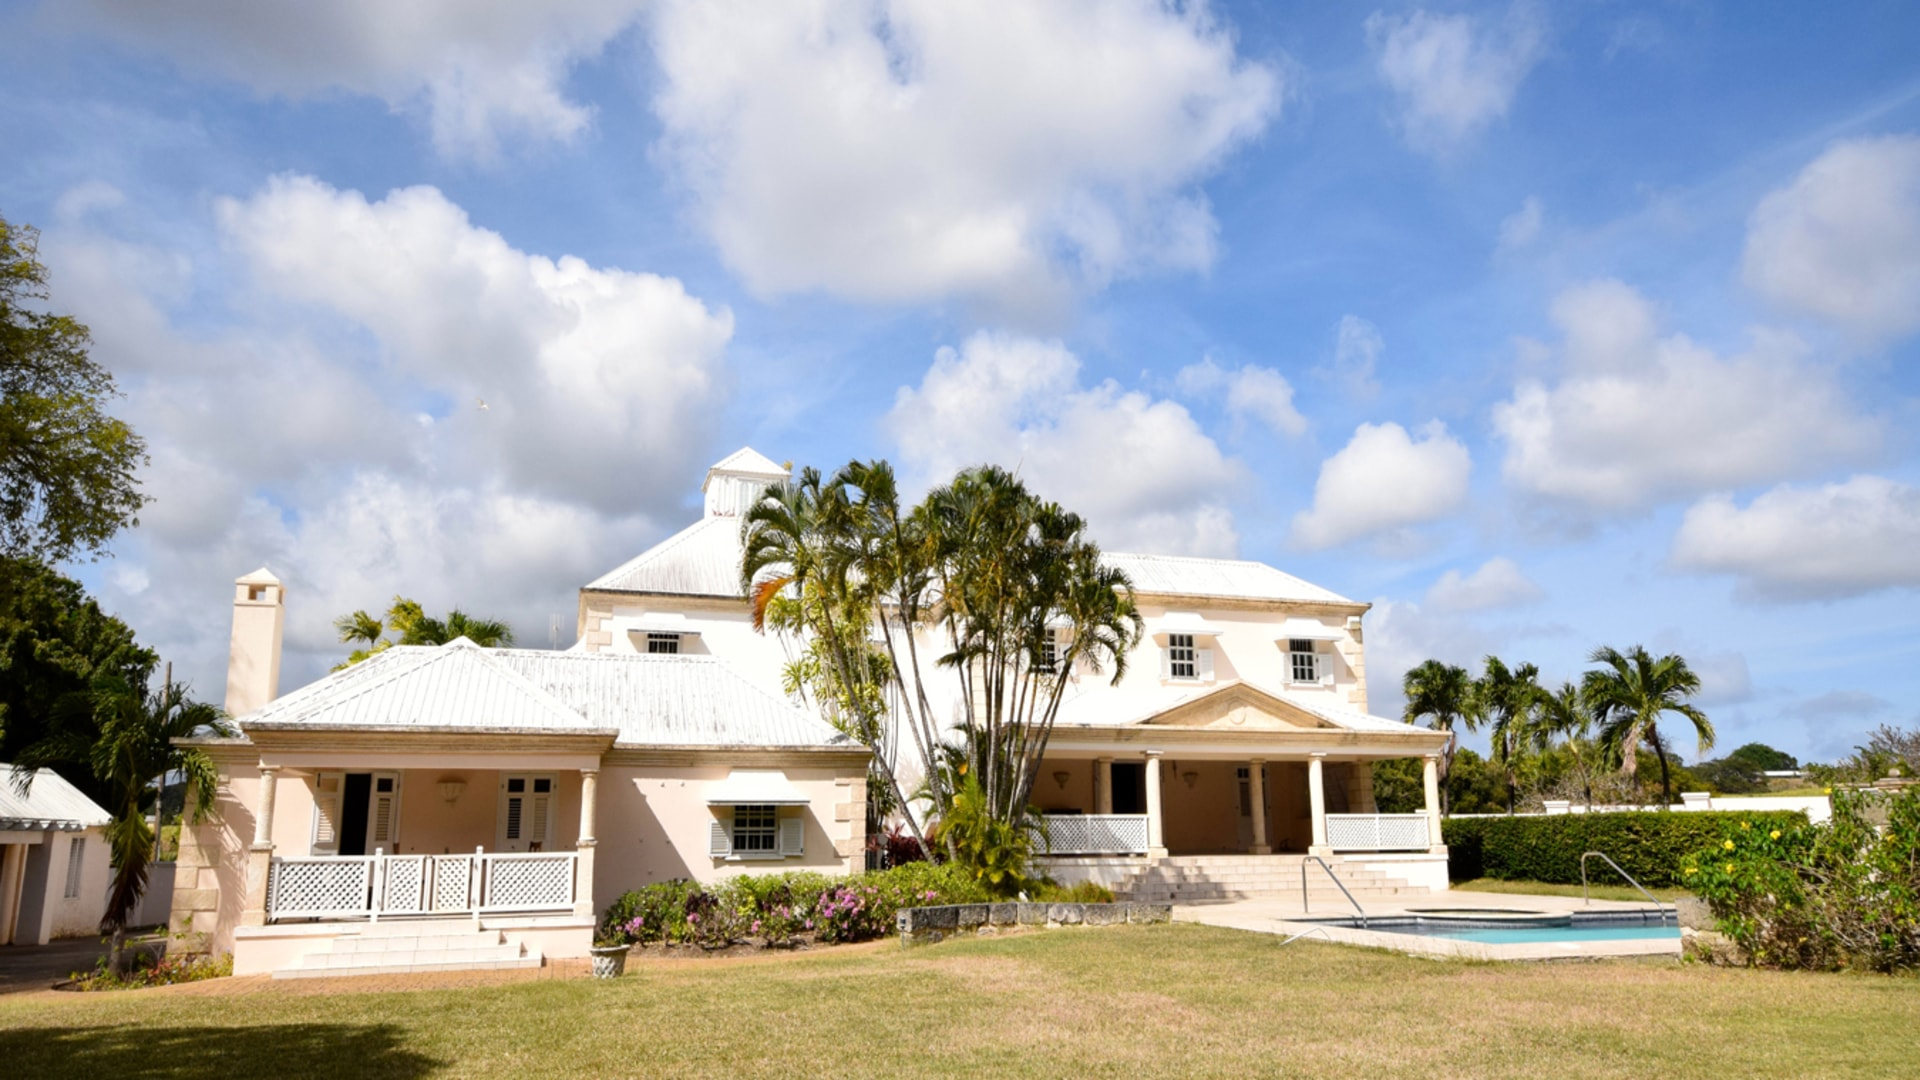 The Valley Great House Plantation House Barbados Real